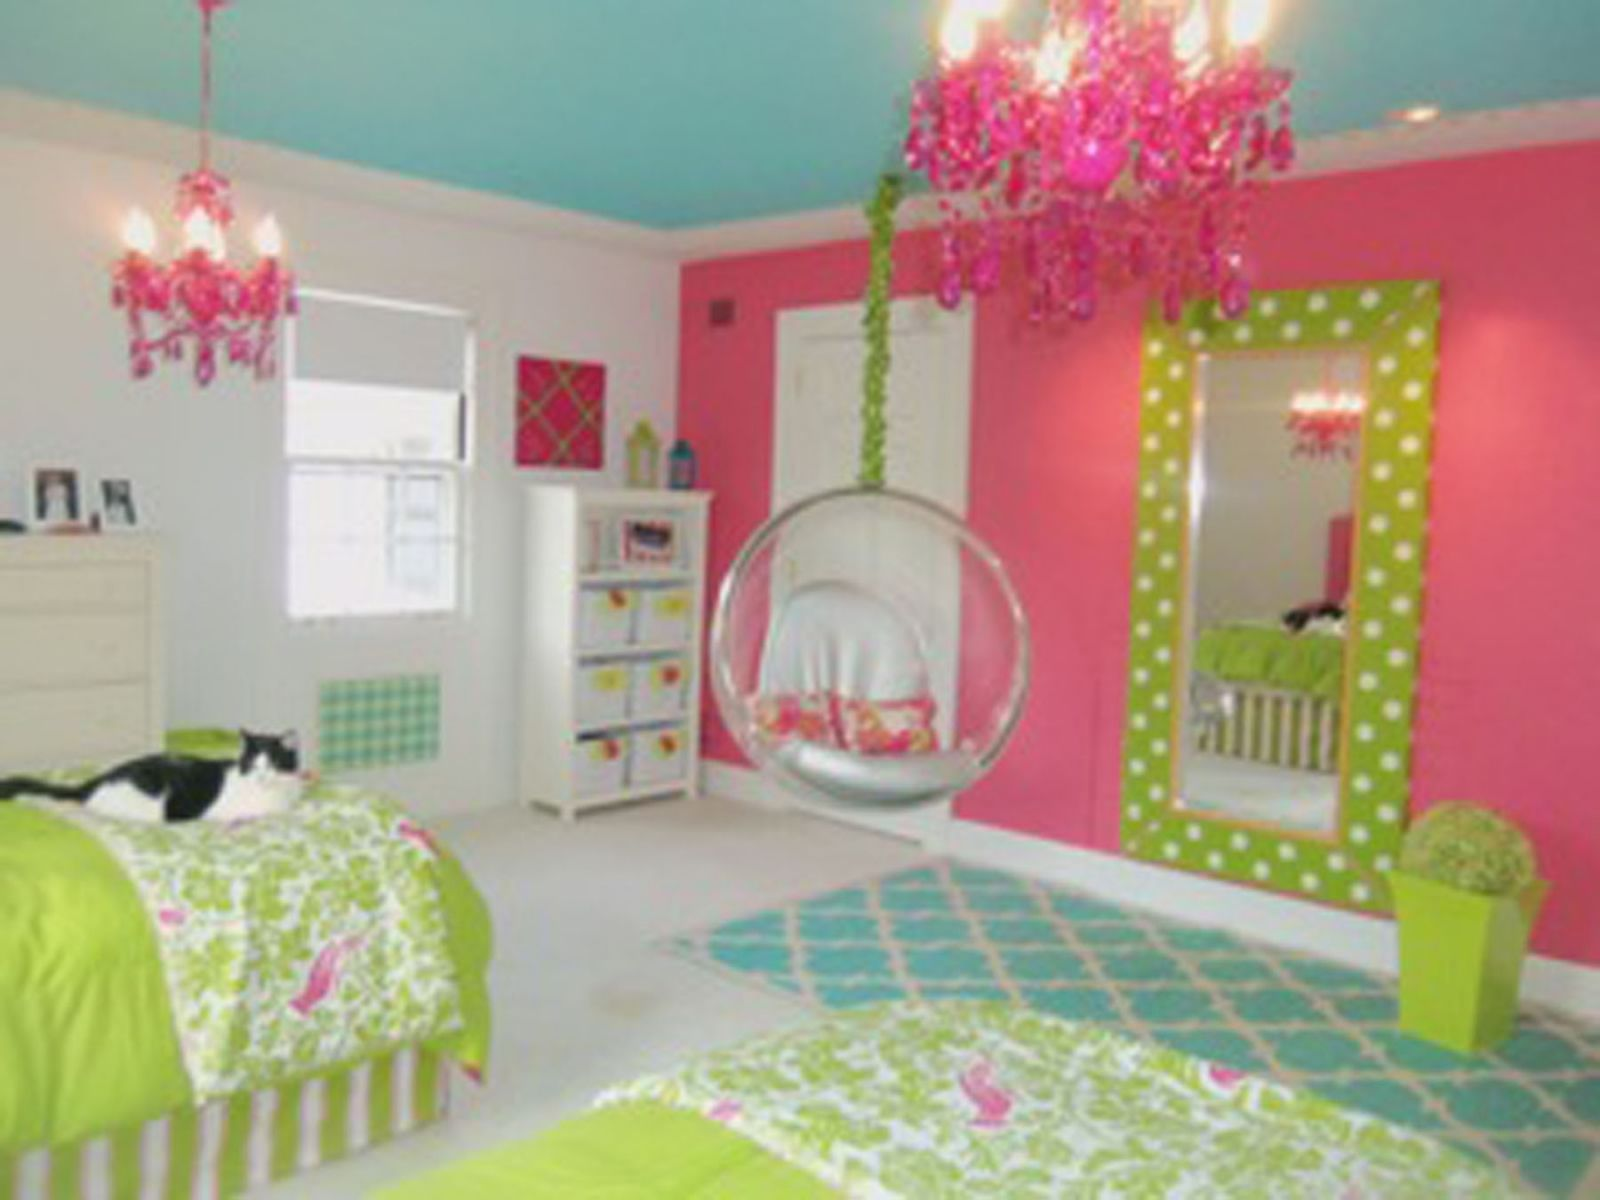 Bedroom Room Decor Ideas Tumblr Kids Beds For Girls Bunk Beds